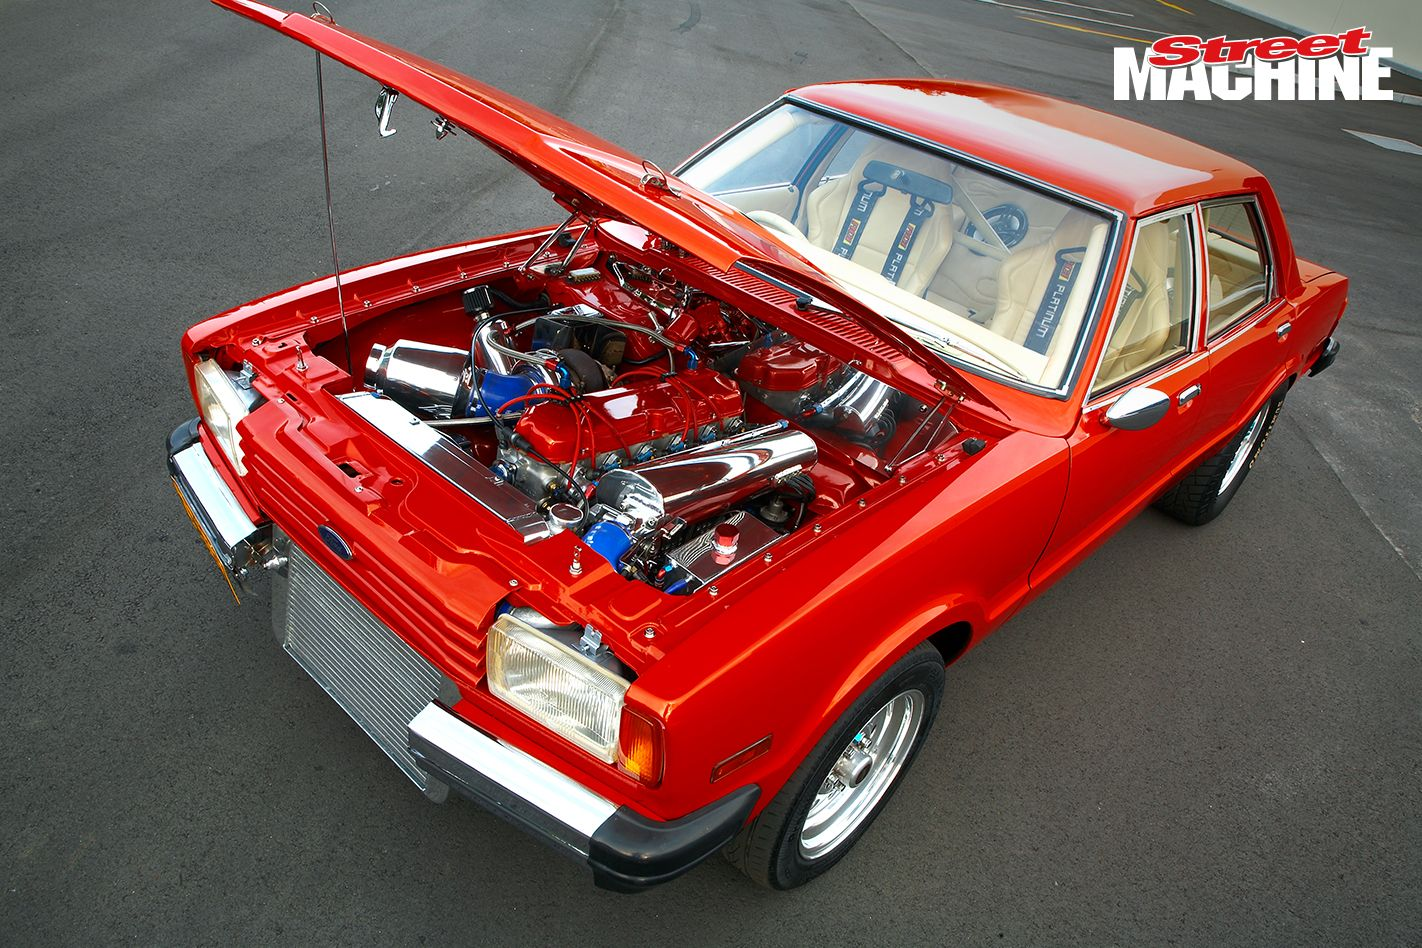 Turbo Six Powered Te Ford Cortina Runs Nines Ford Turbo Ford Motor